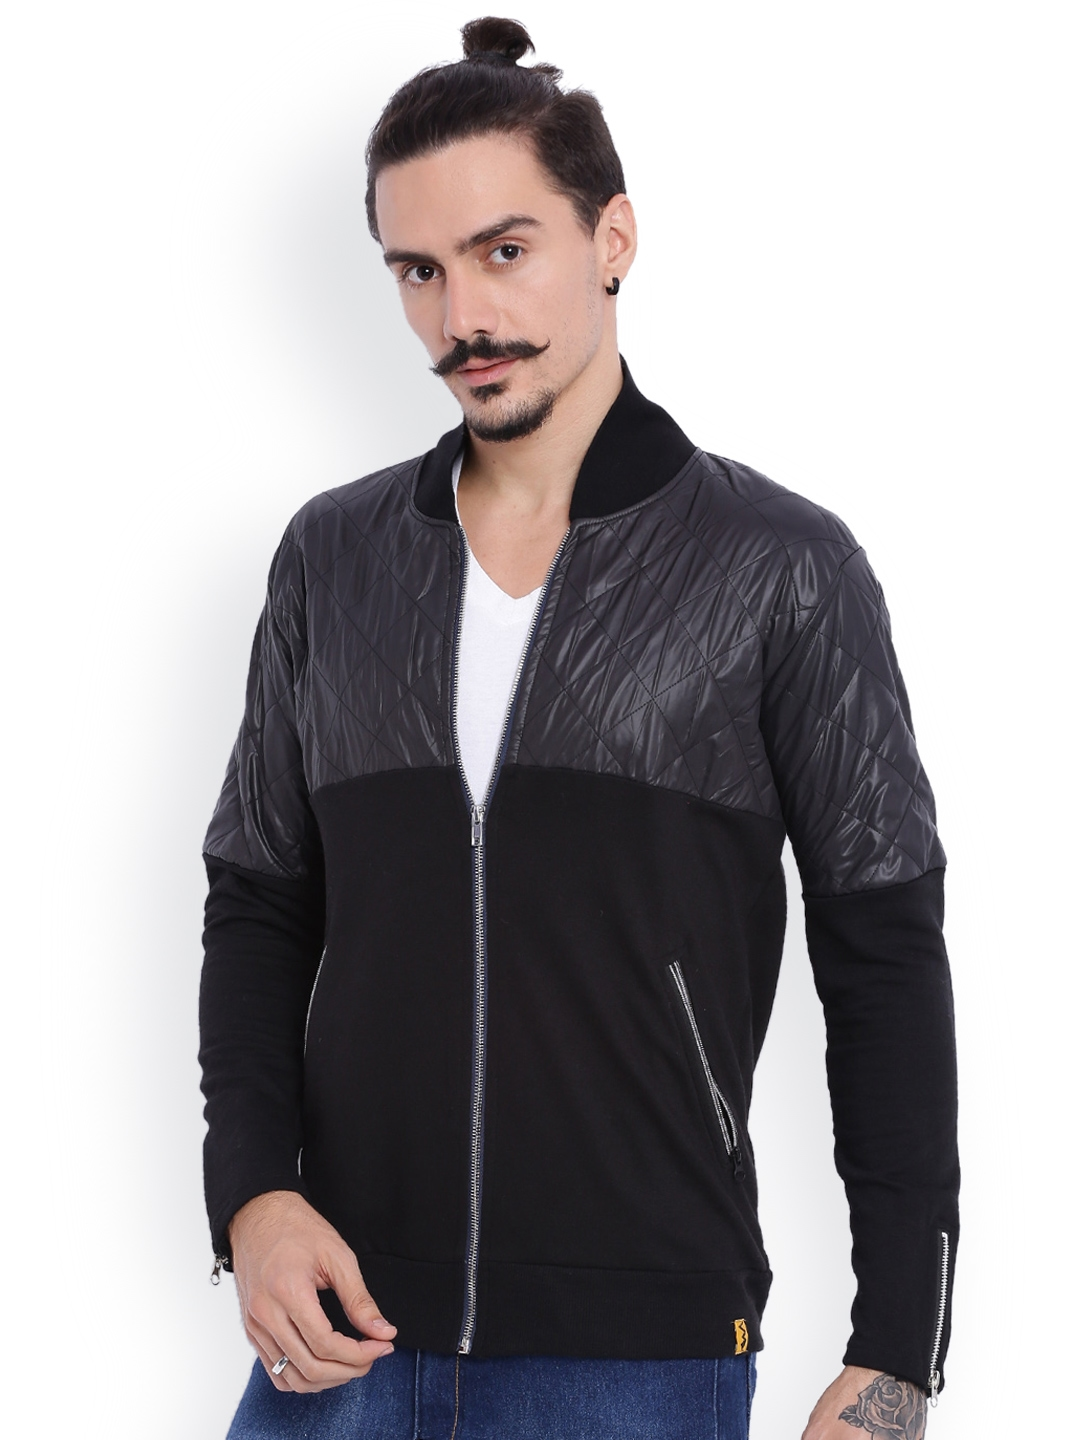 ccfadb0e2 Buy Campus Sutra Black Bomber Jacket With Quilted Detail - Jackets ...